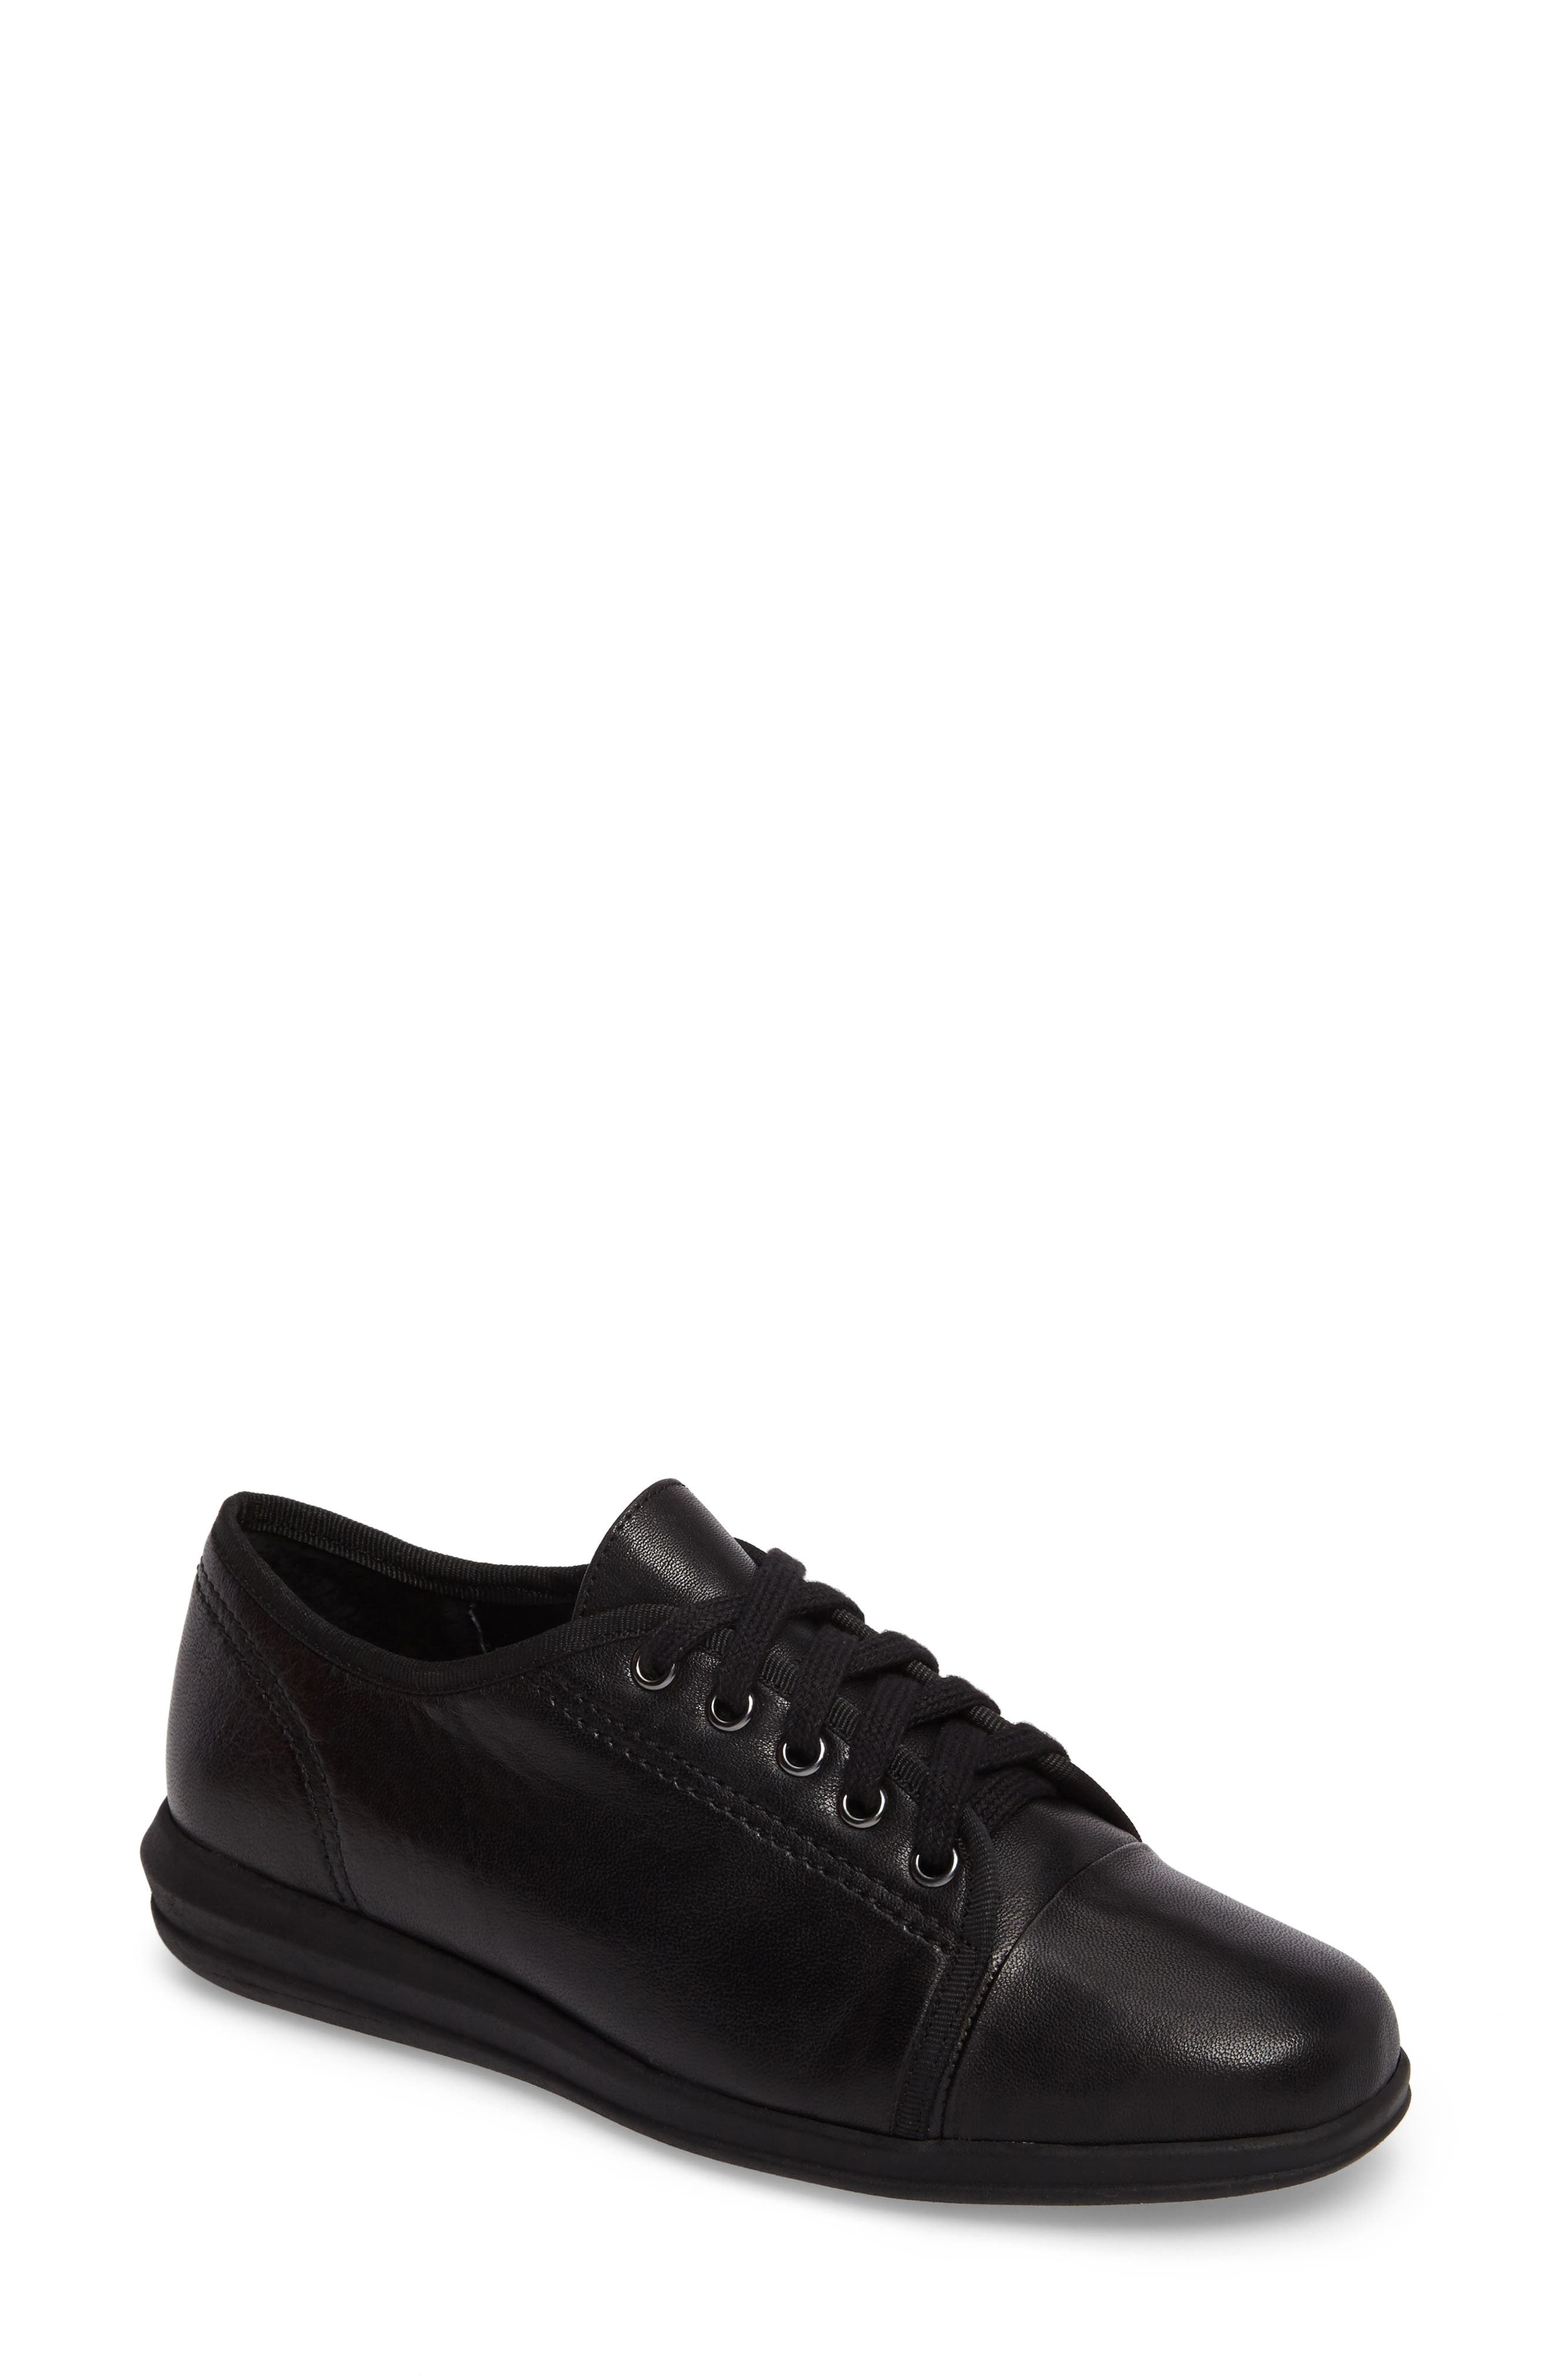 Siren Sneaker,                             Main thumbnail 1, color,                             BLACK LEATHER